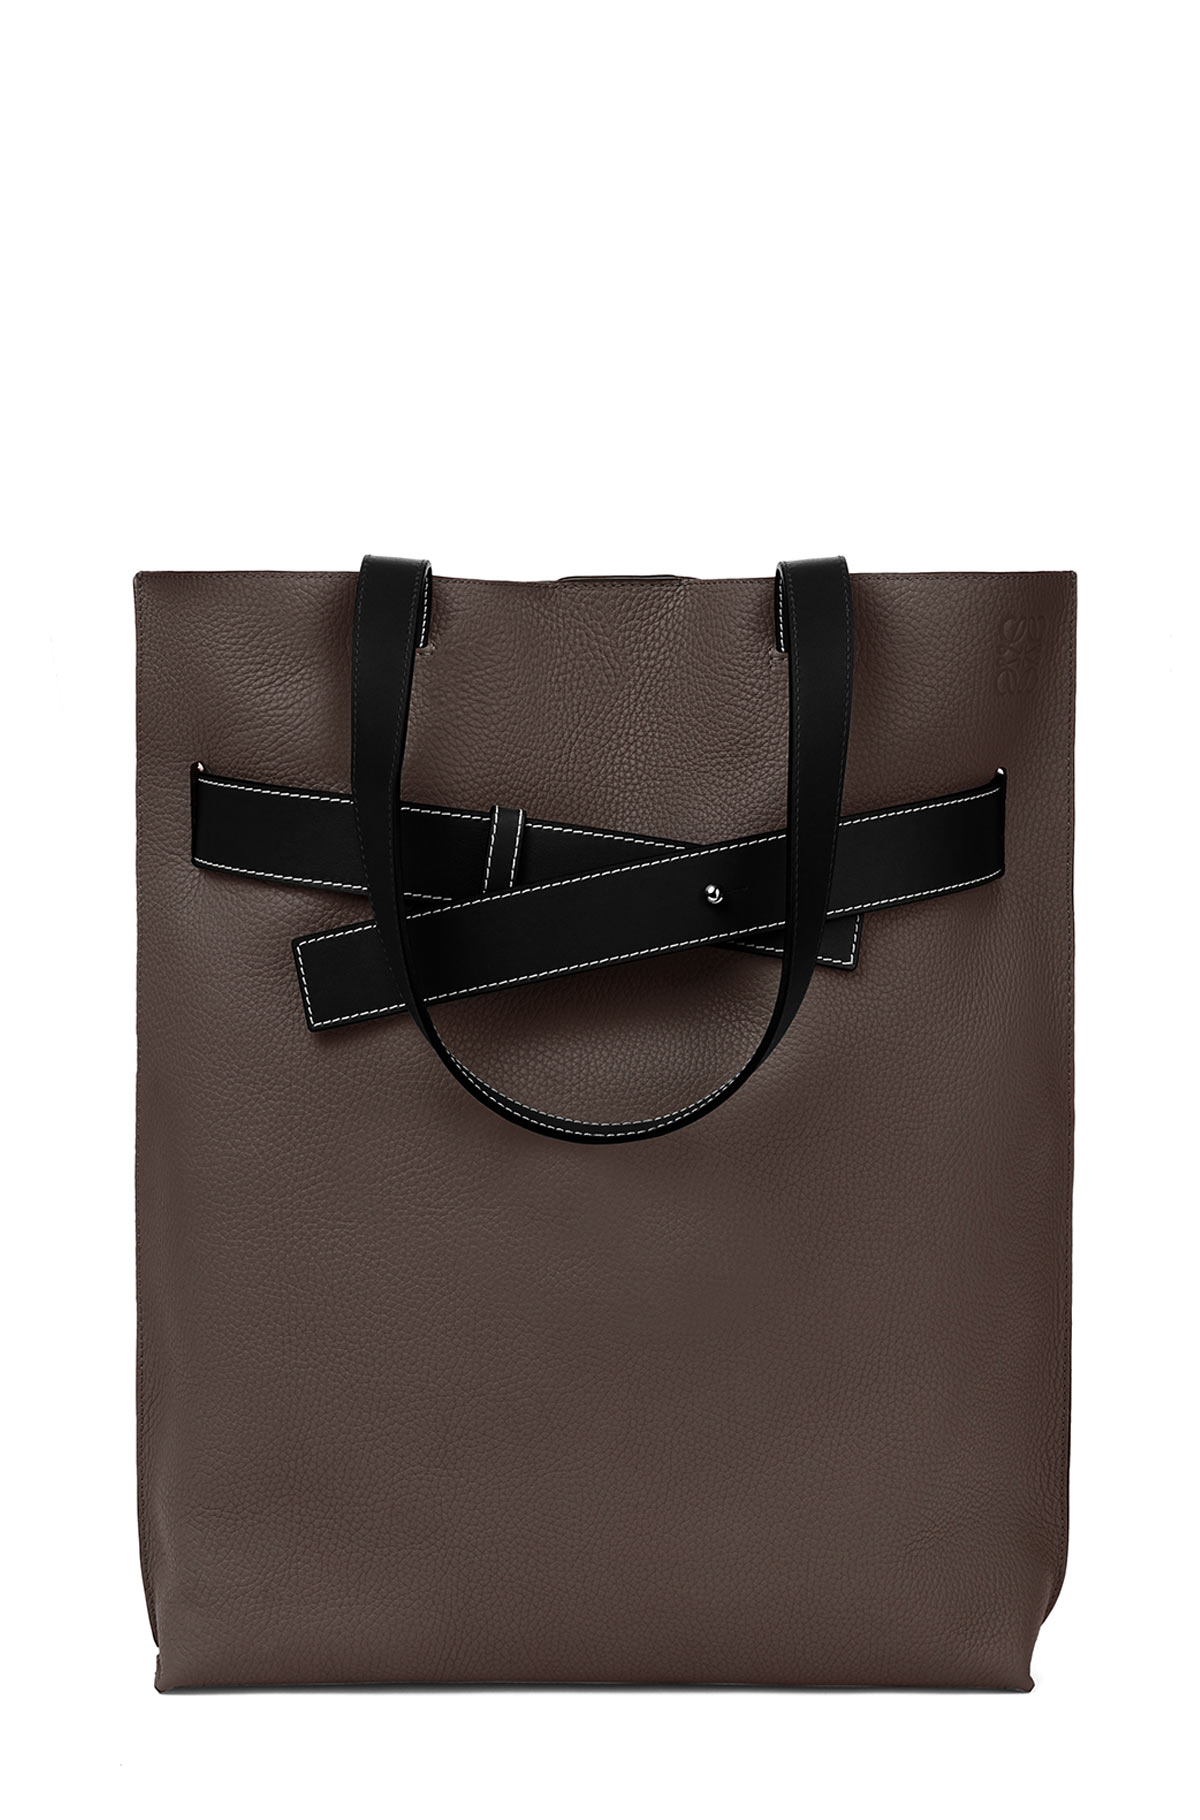 LOEWE Strap Vertical Tote Bag Dark Grey/Black front